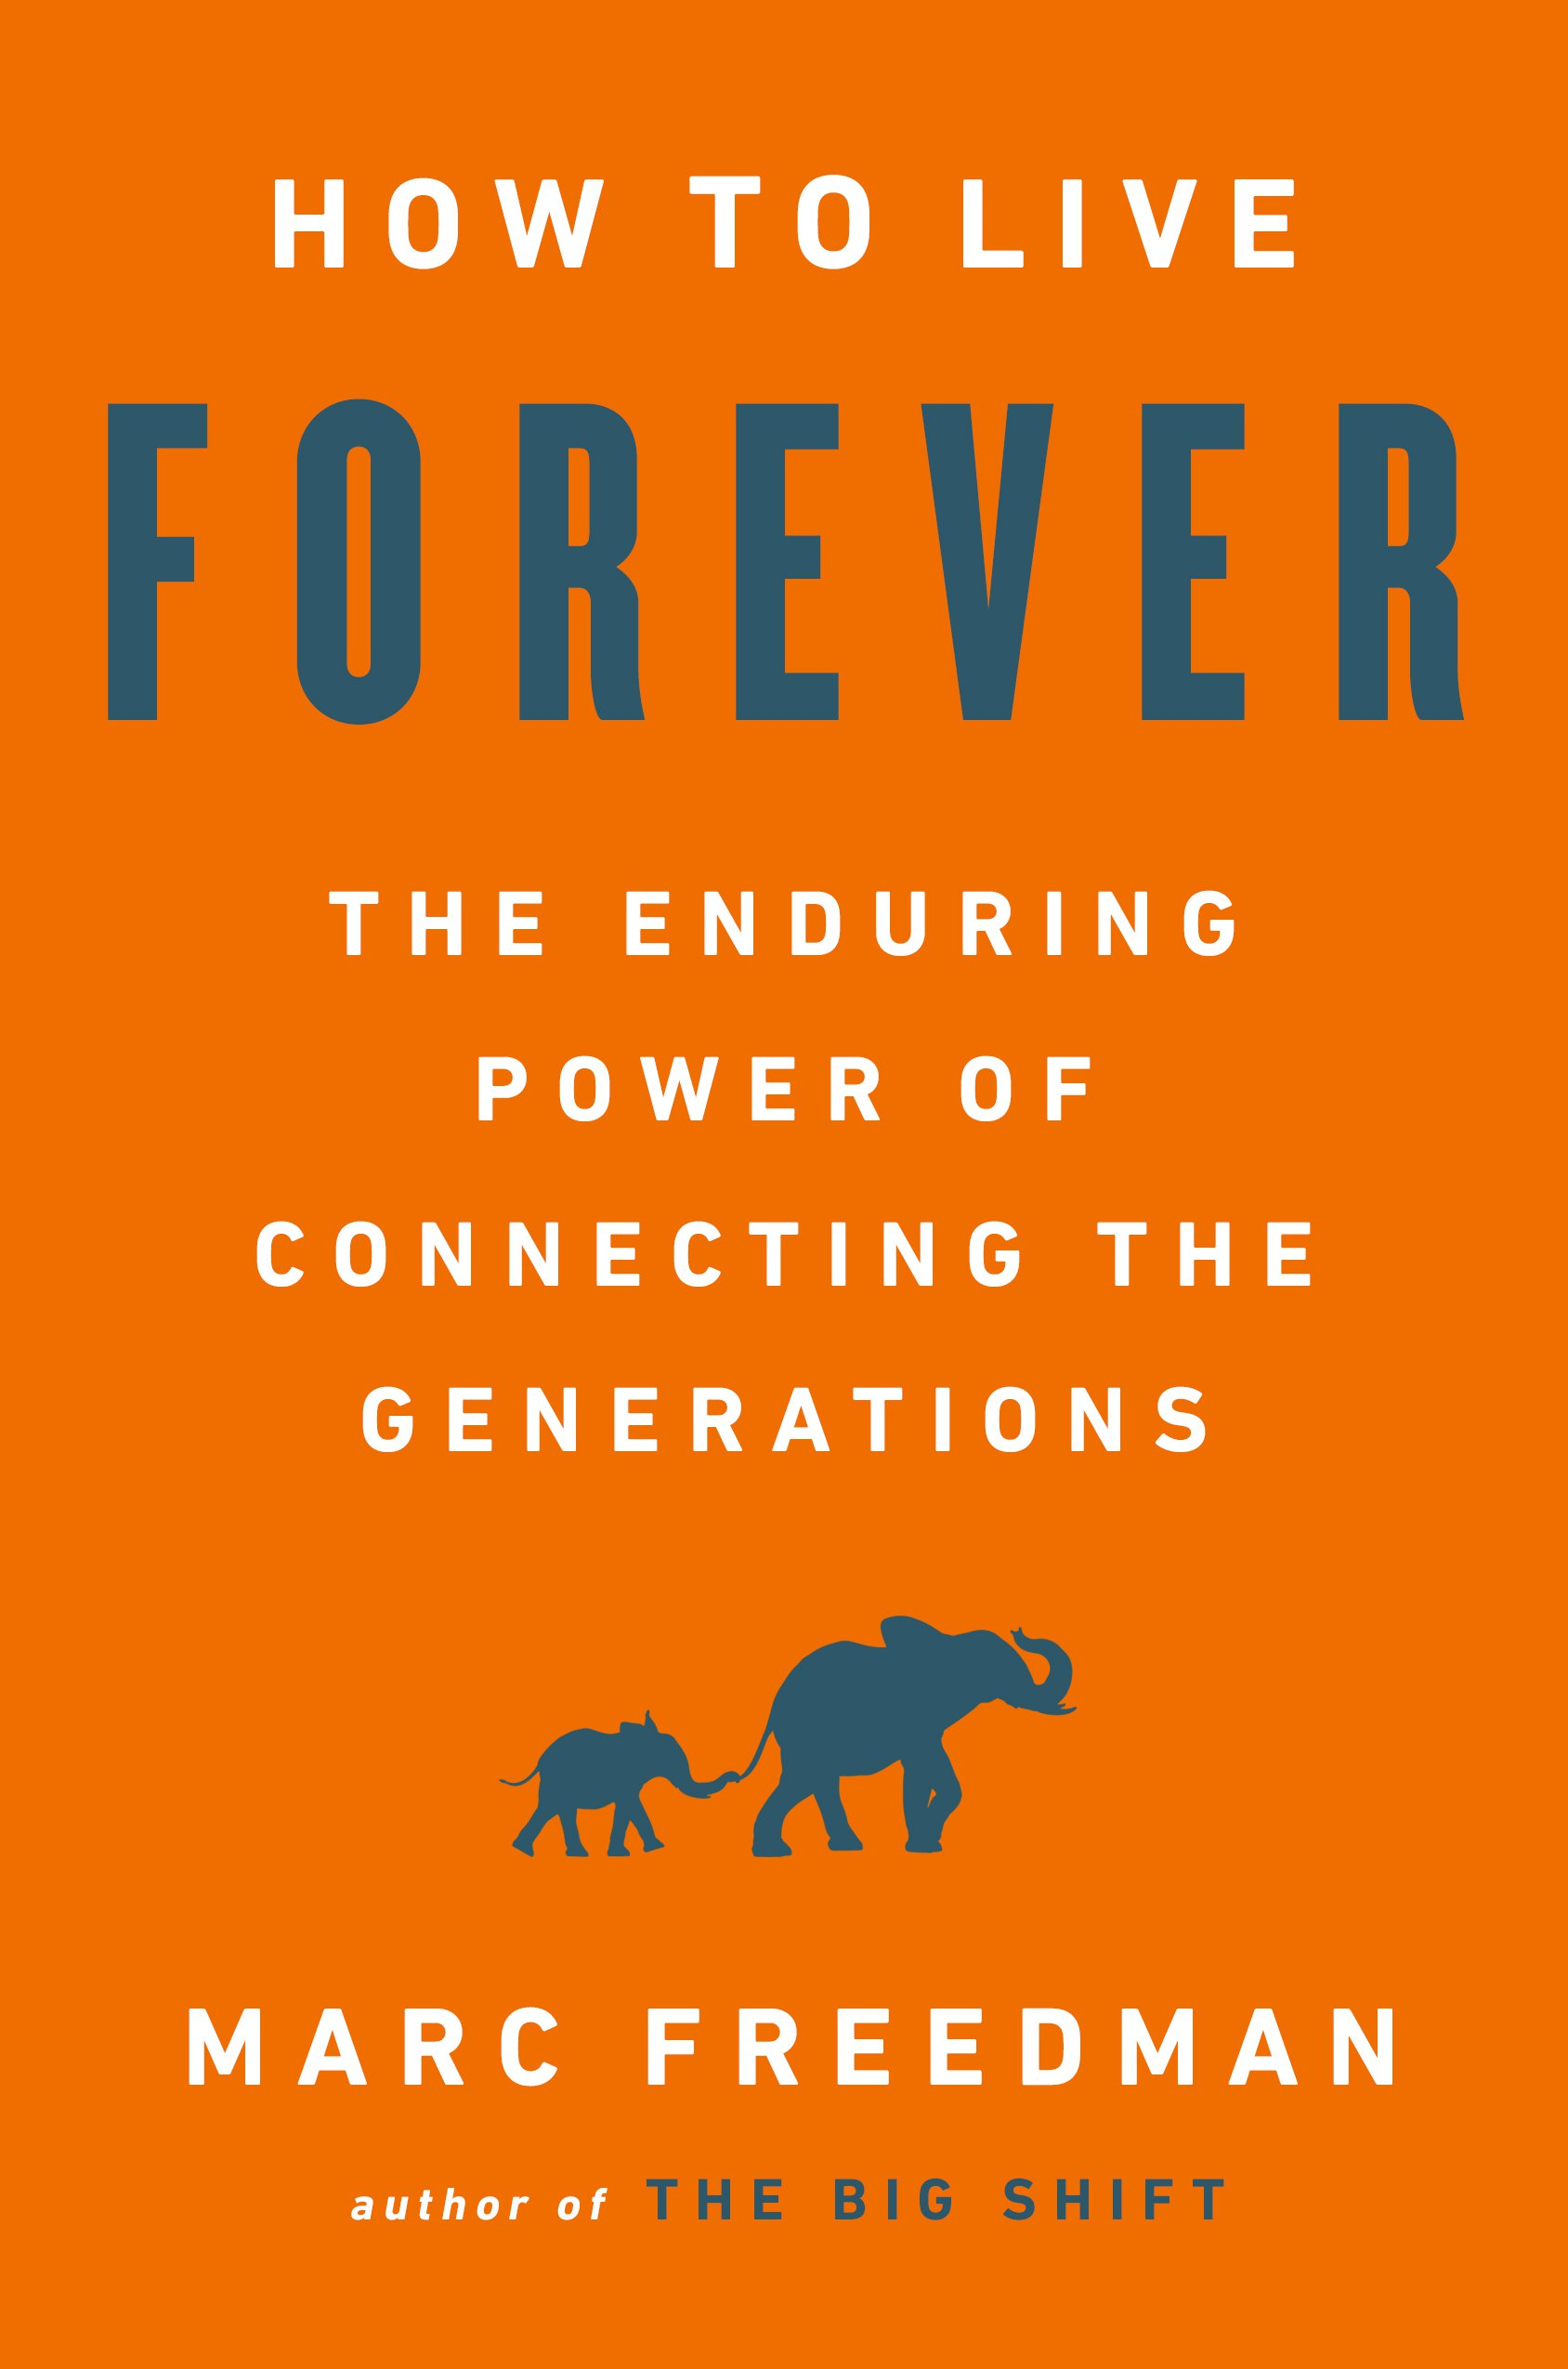 How to Live Forever - The Enduring Power of Connecting the GenerationsMarc Freedman